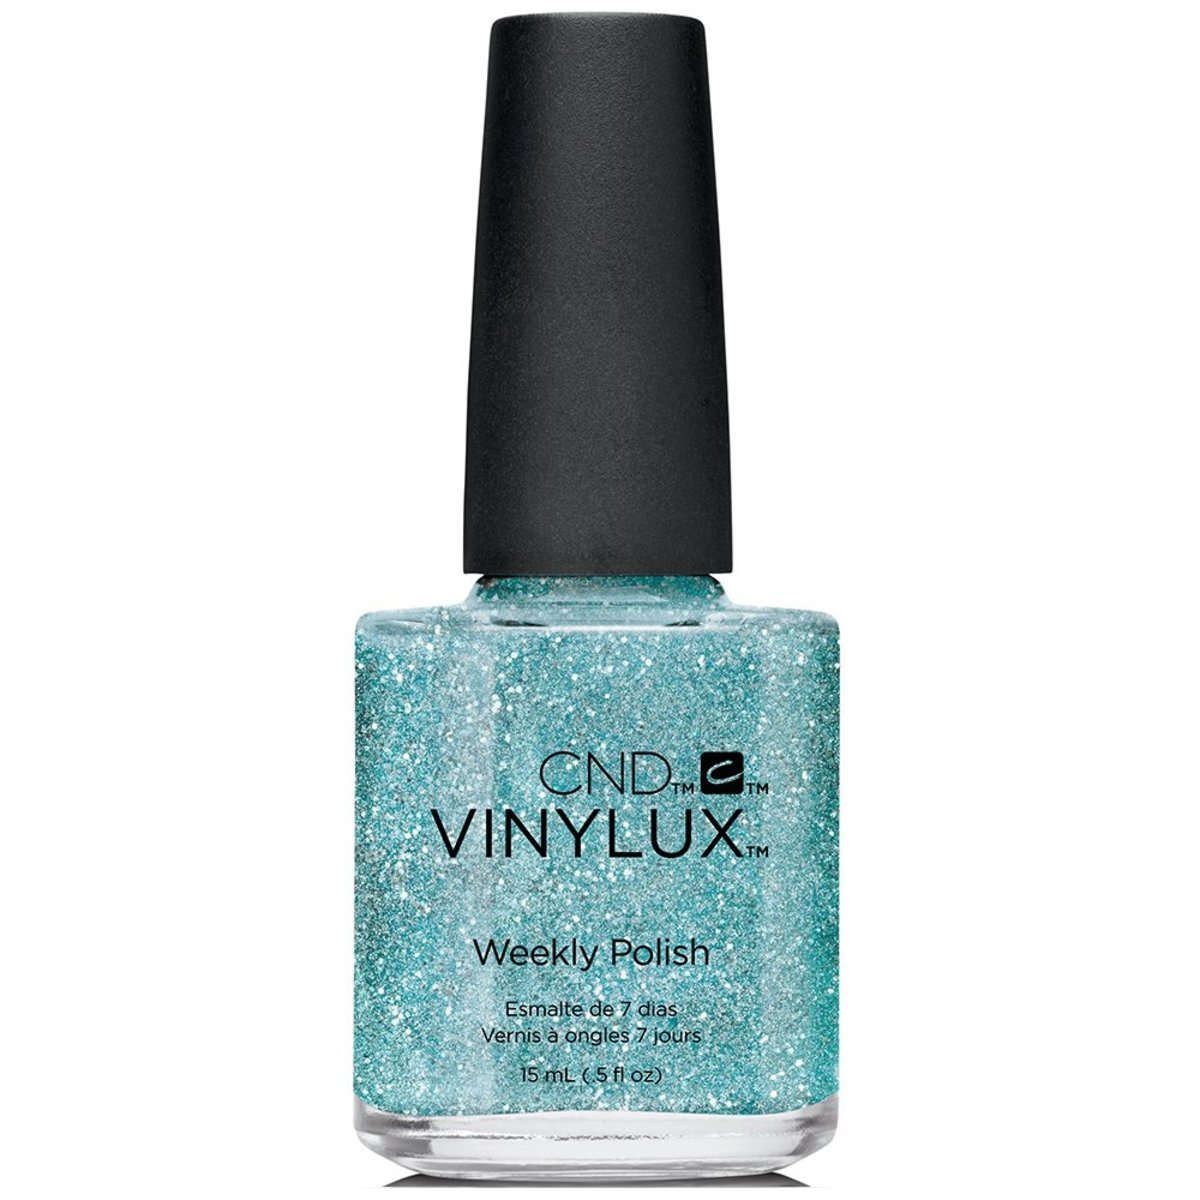 CND Vinylux Weekly Polish in Glacial Mist